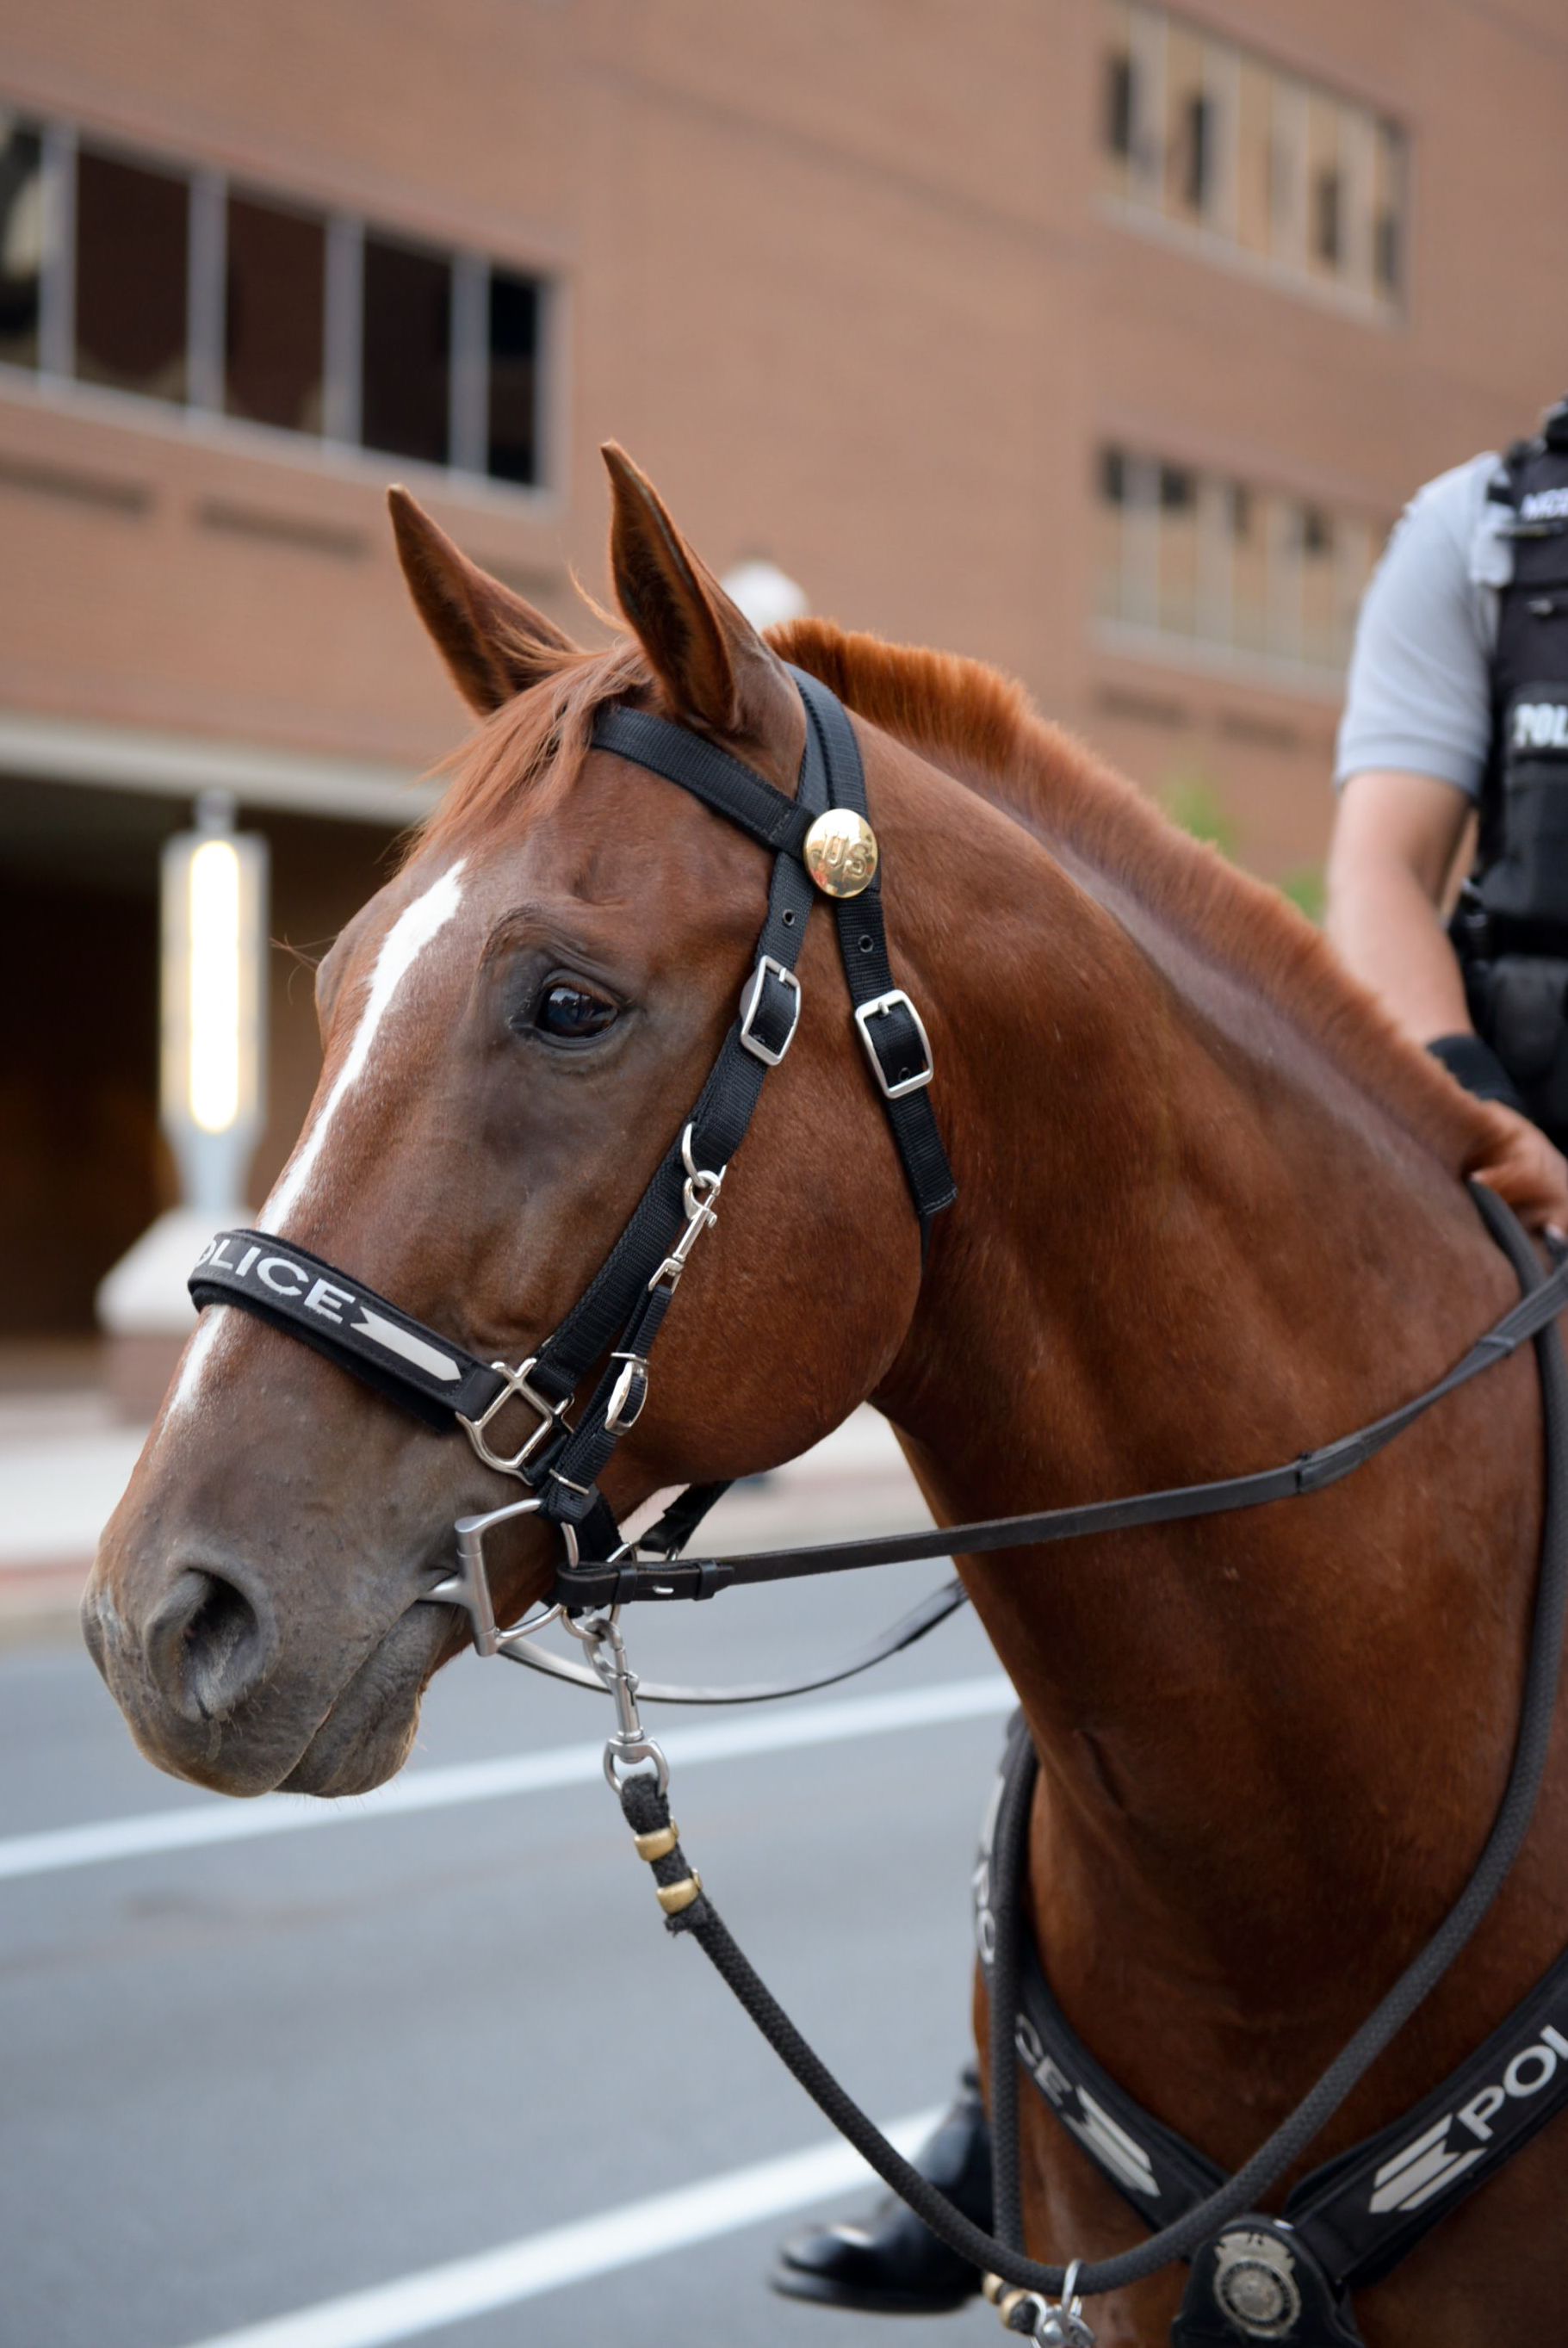 Police horse! (I couldn't resist taking this pic. She was just stunning.)